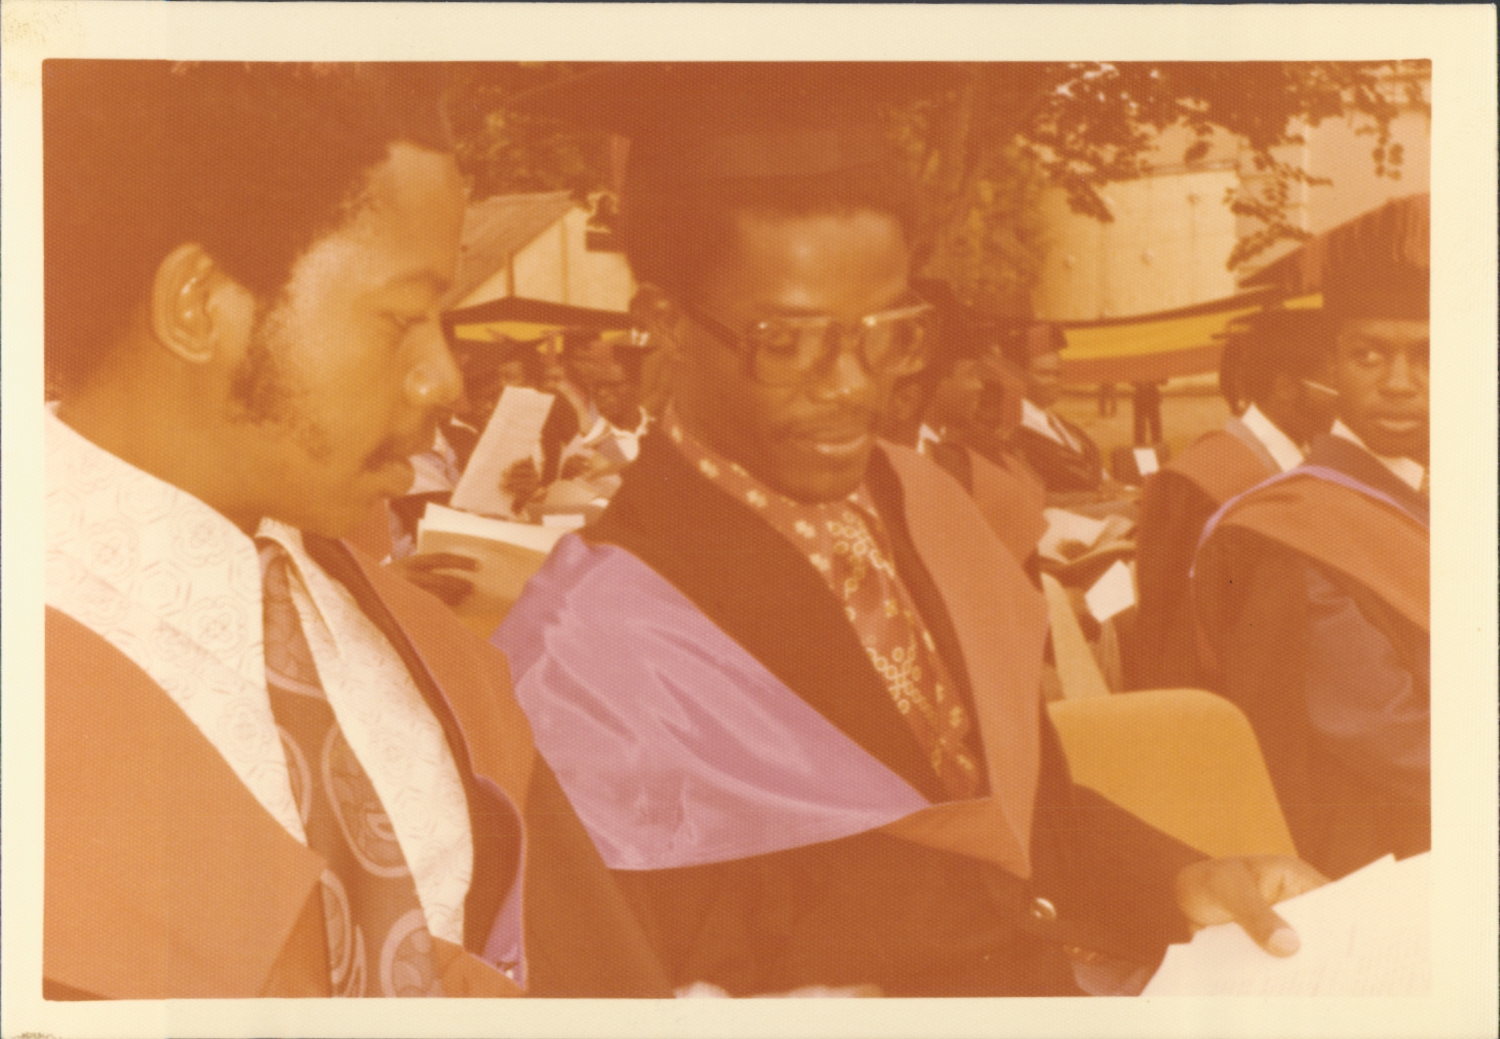 Friday March 18, 1977 – Graduation Day, Makerere University, Kampala